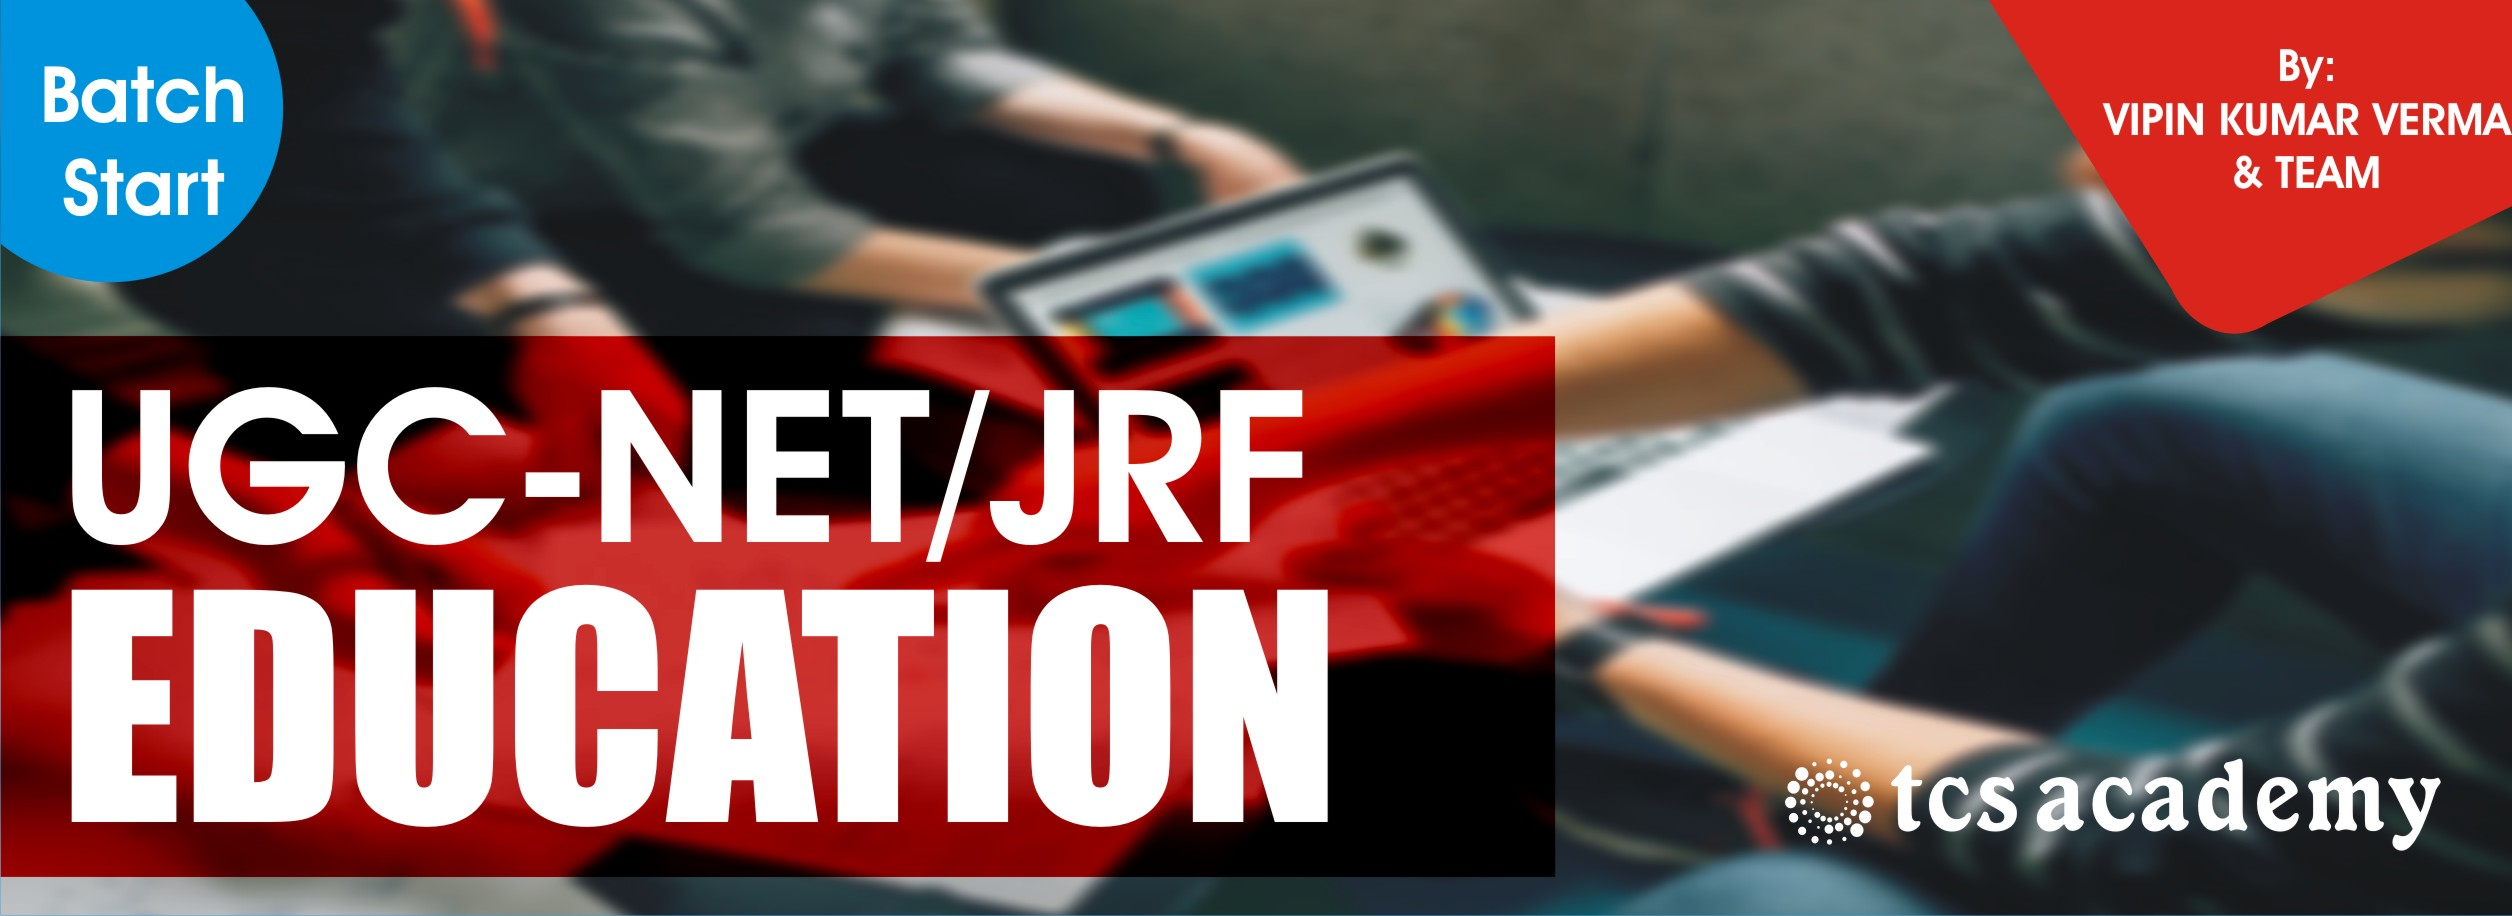 UGC NET JRF Education